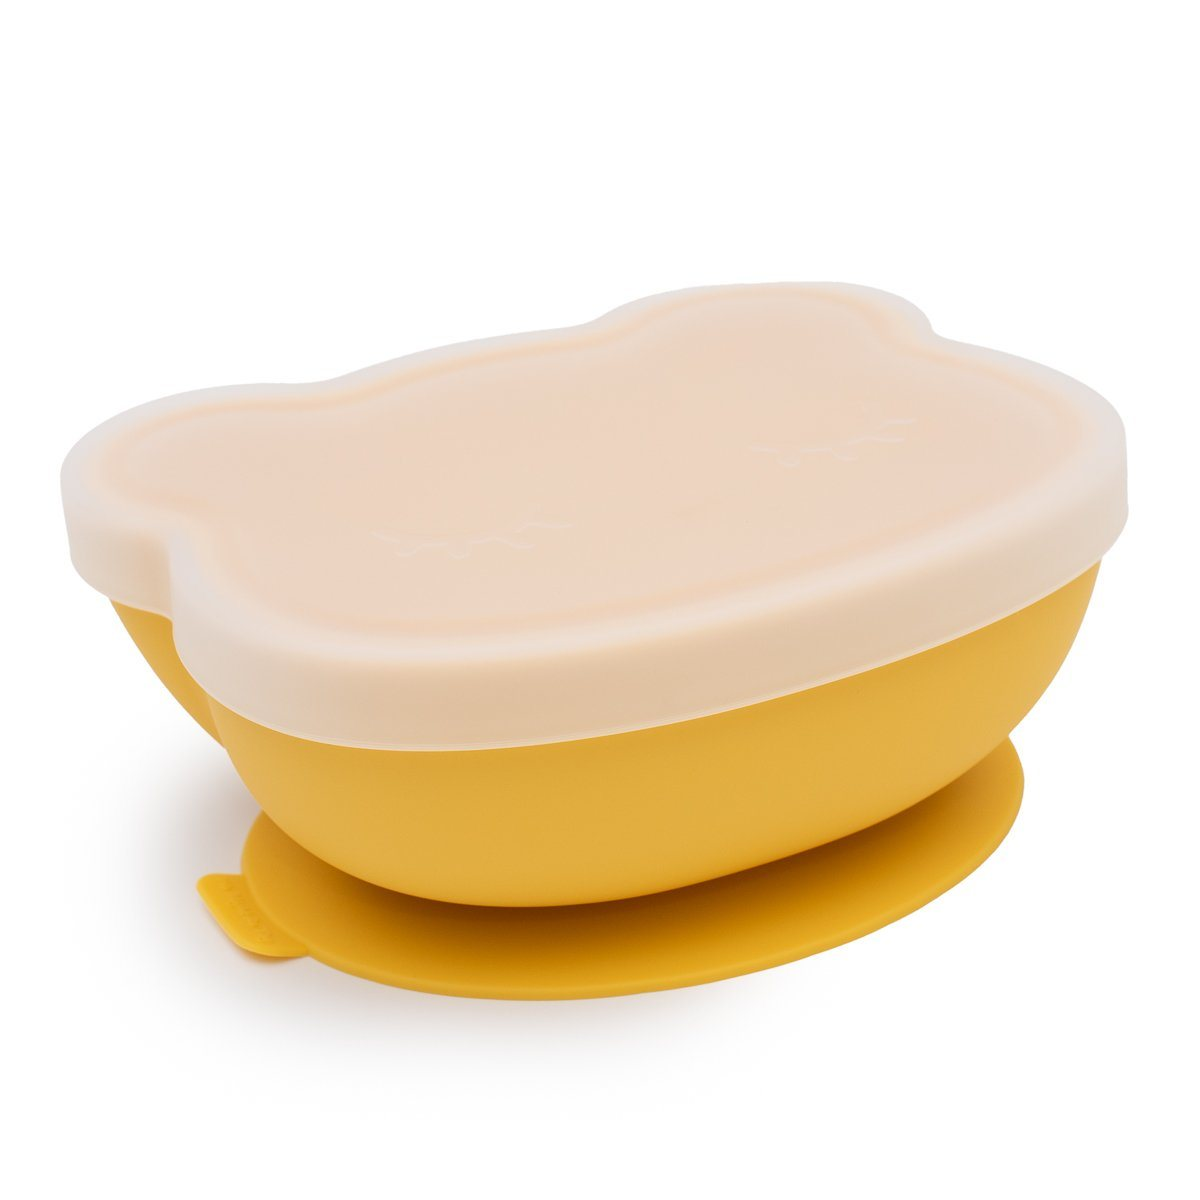 Stickie Bowl (Yellow)